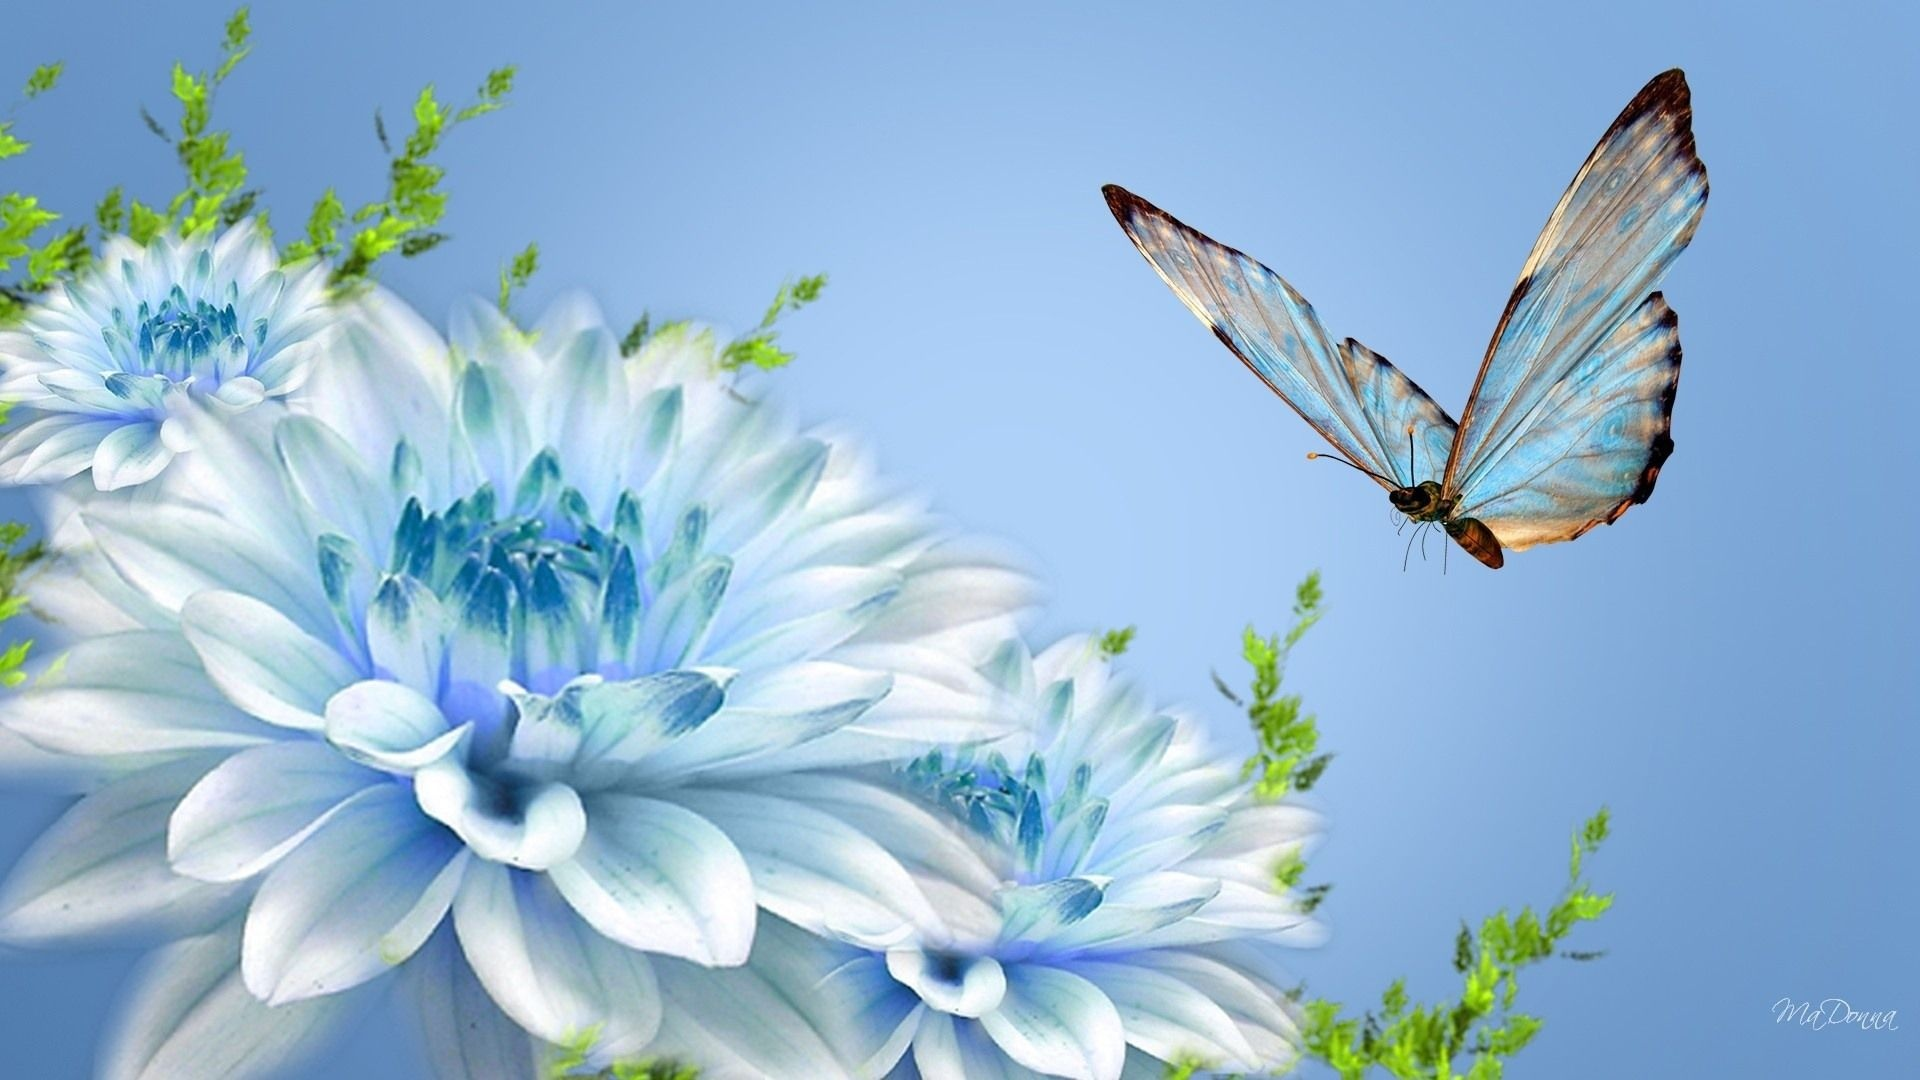 cute-blue-flowers-butterfly-desktop-background-picture-new-best-hd-wallpapers-of-blue-flowers